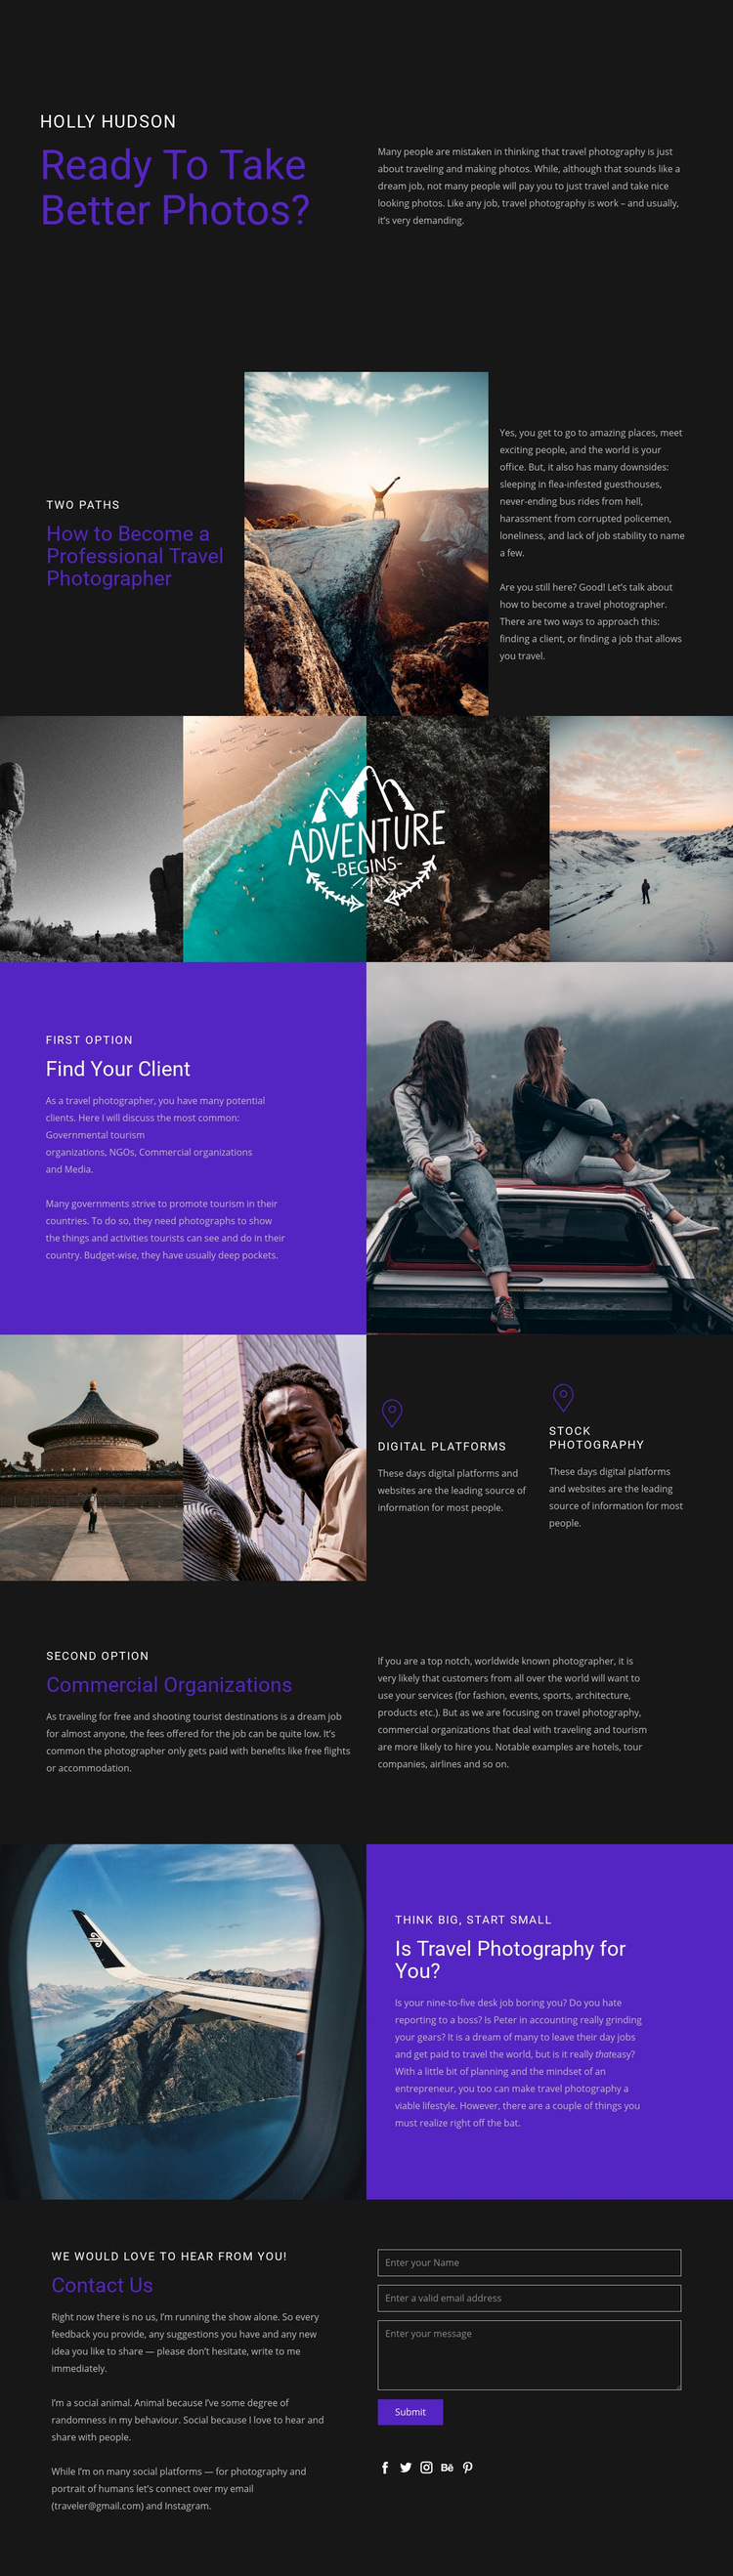 Travel and photography Web Page Designer